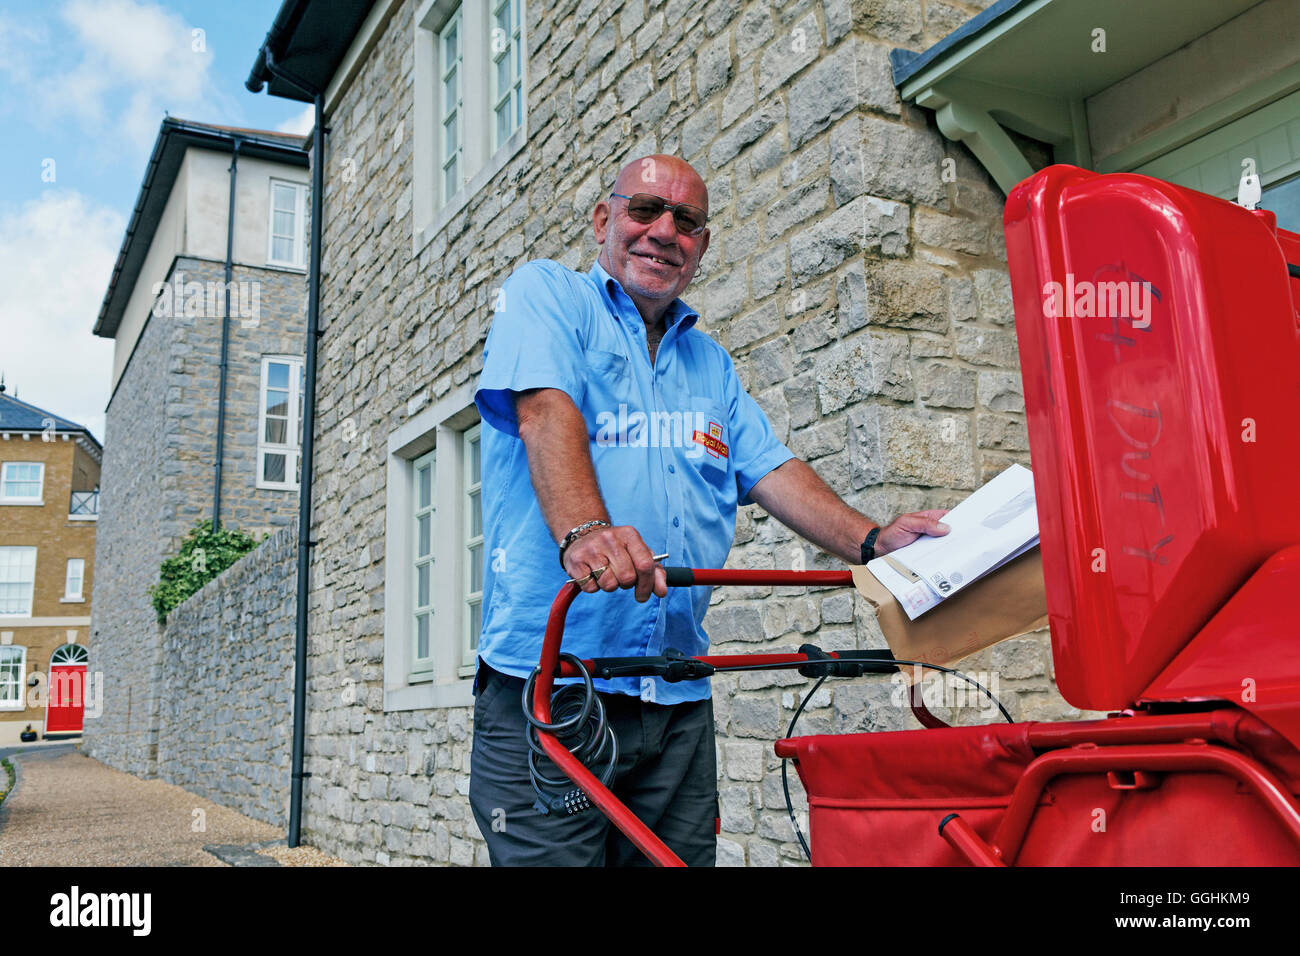 Postman in Poundbury, Dorchester, Dorset, England, Great Britain - Stock Image